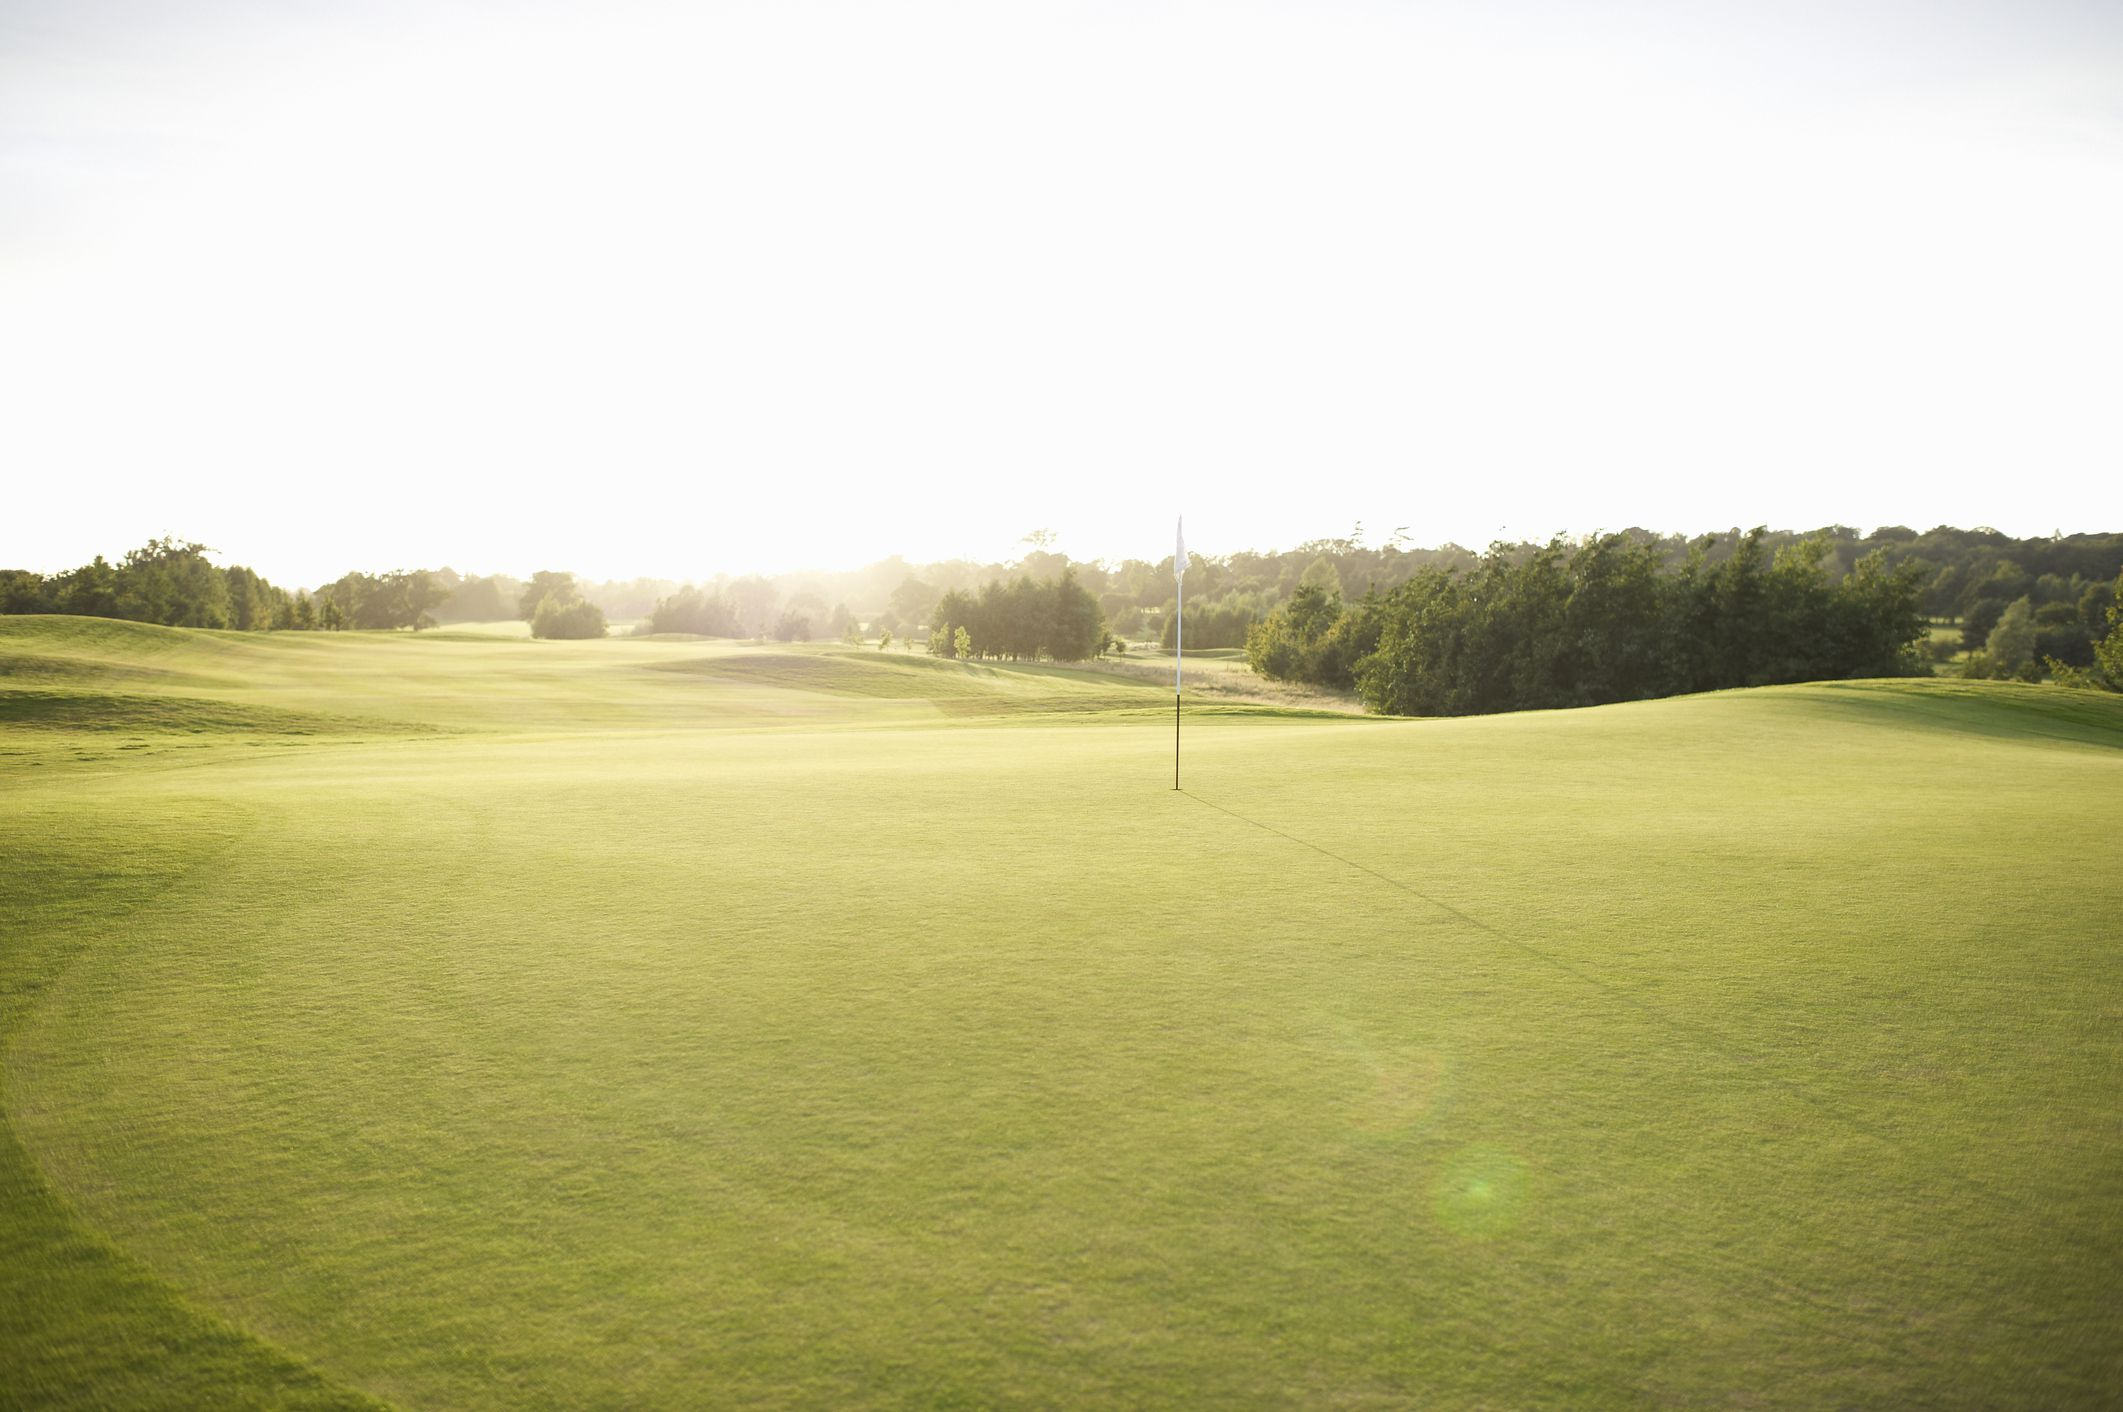 The Tennessee Golf Trail and the Jack Nicklaus Bear Trace